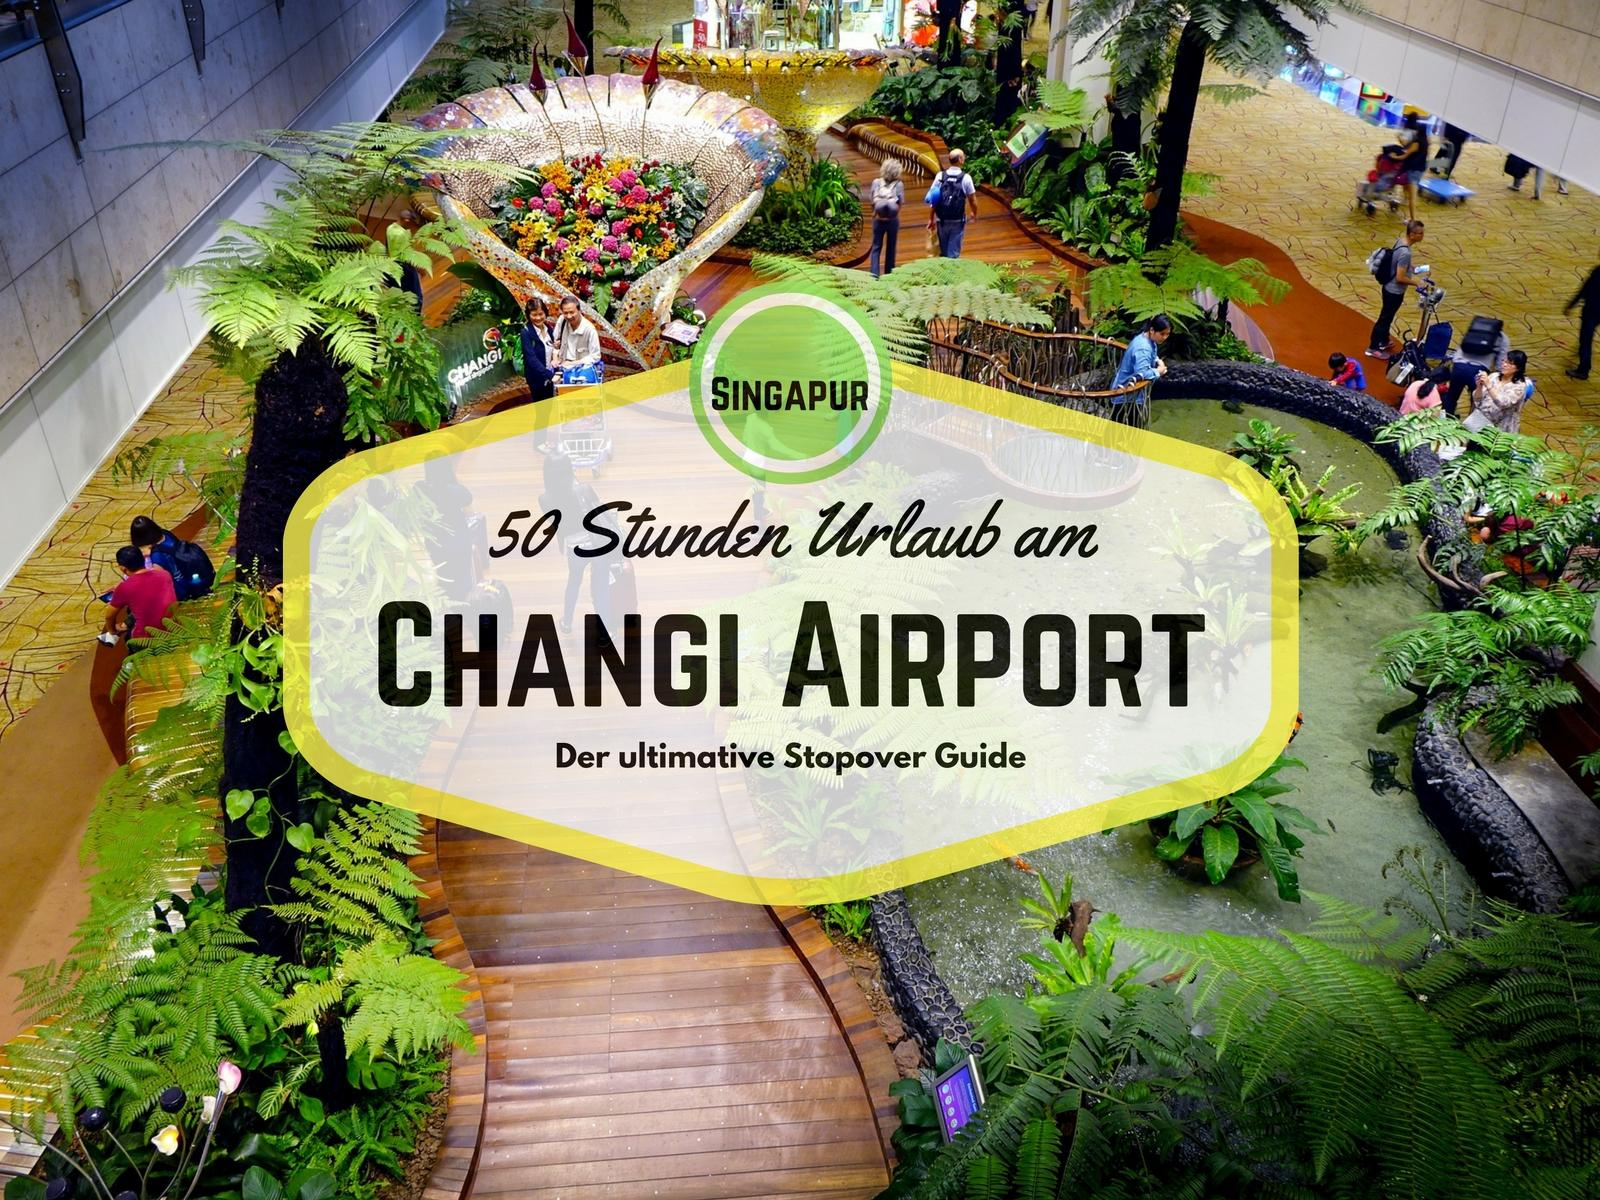 singapur-changi airport-terminal - highlights-tipps-guide deutsch